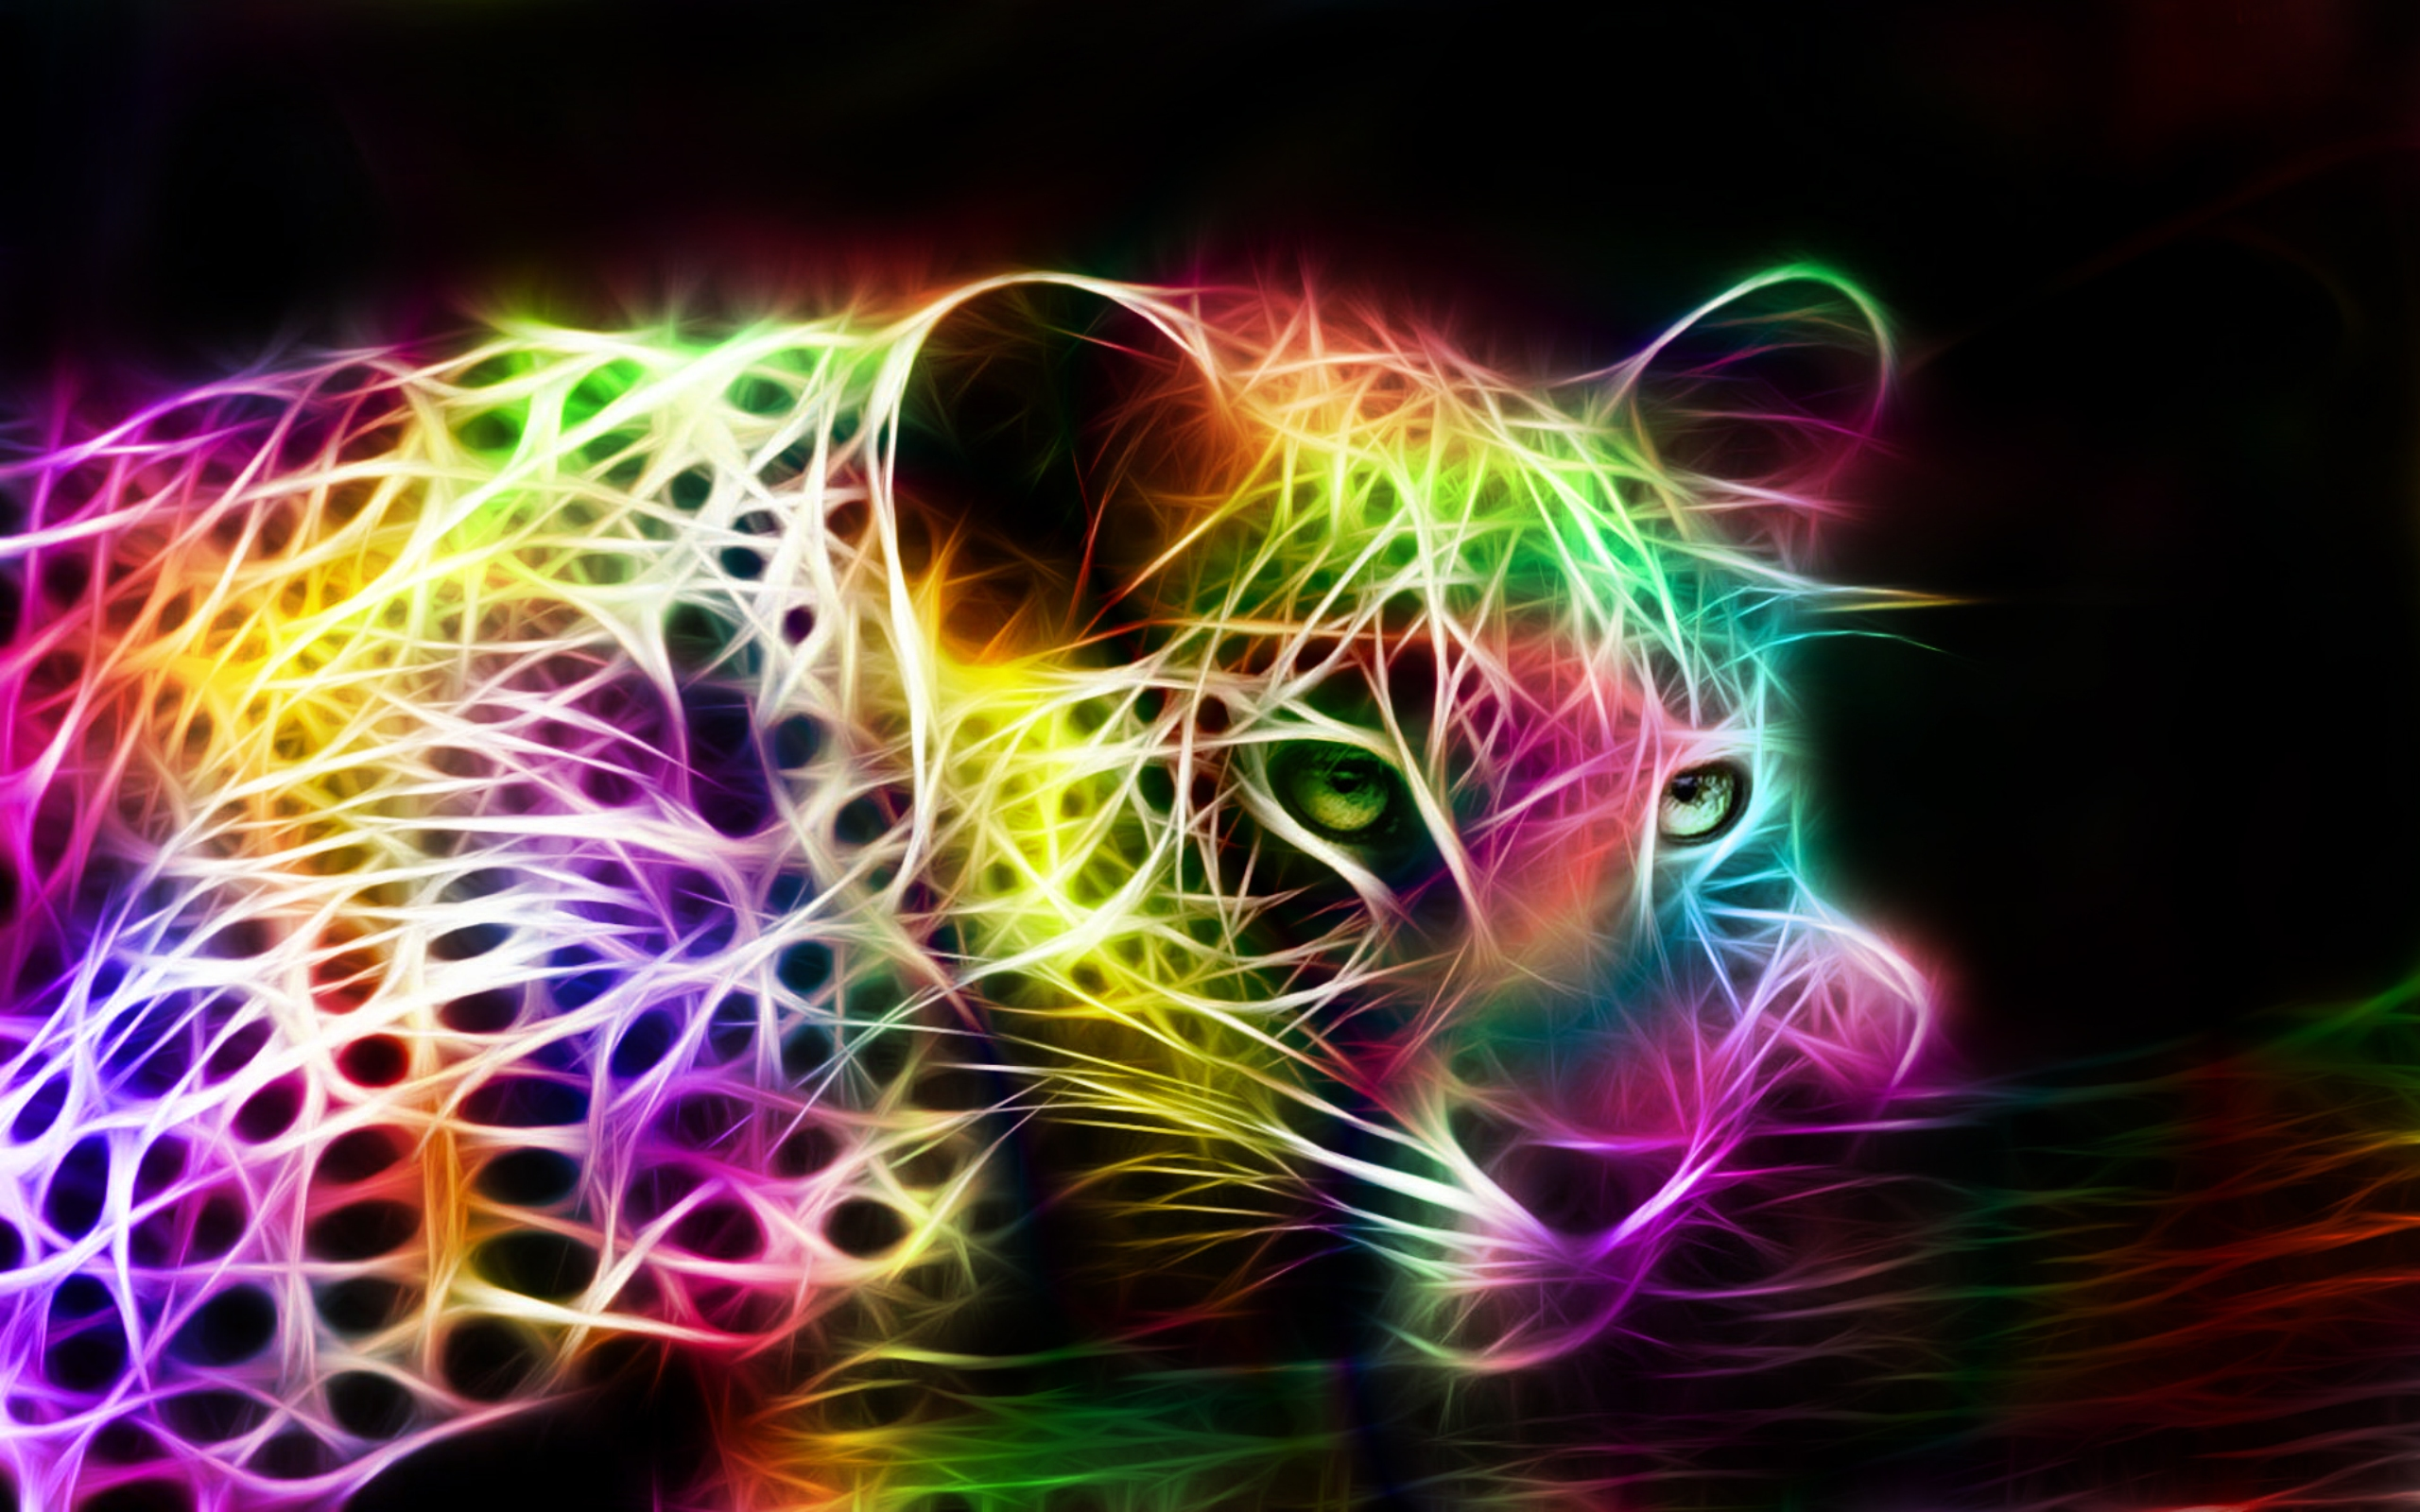 wallpaper.wiki-fractal-rainbow-high-quality-3d-hd-pictures-free